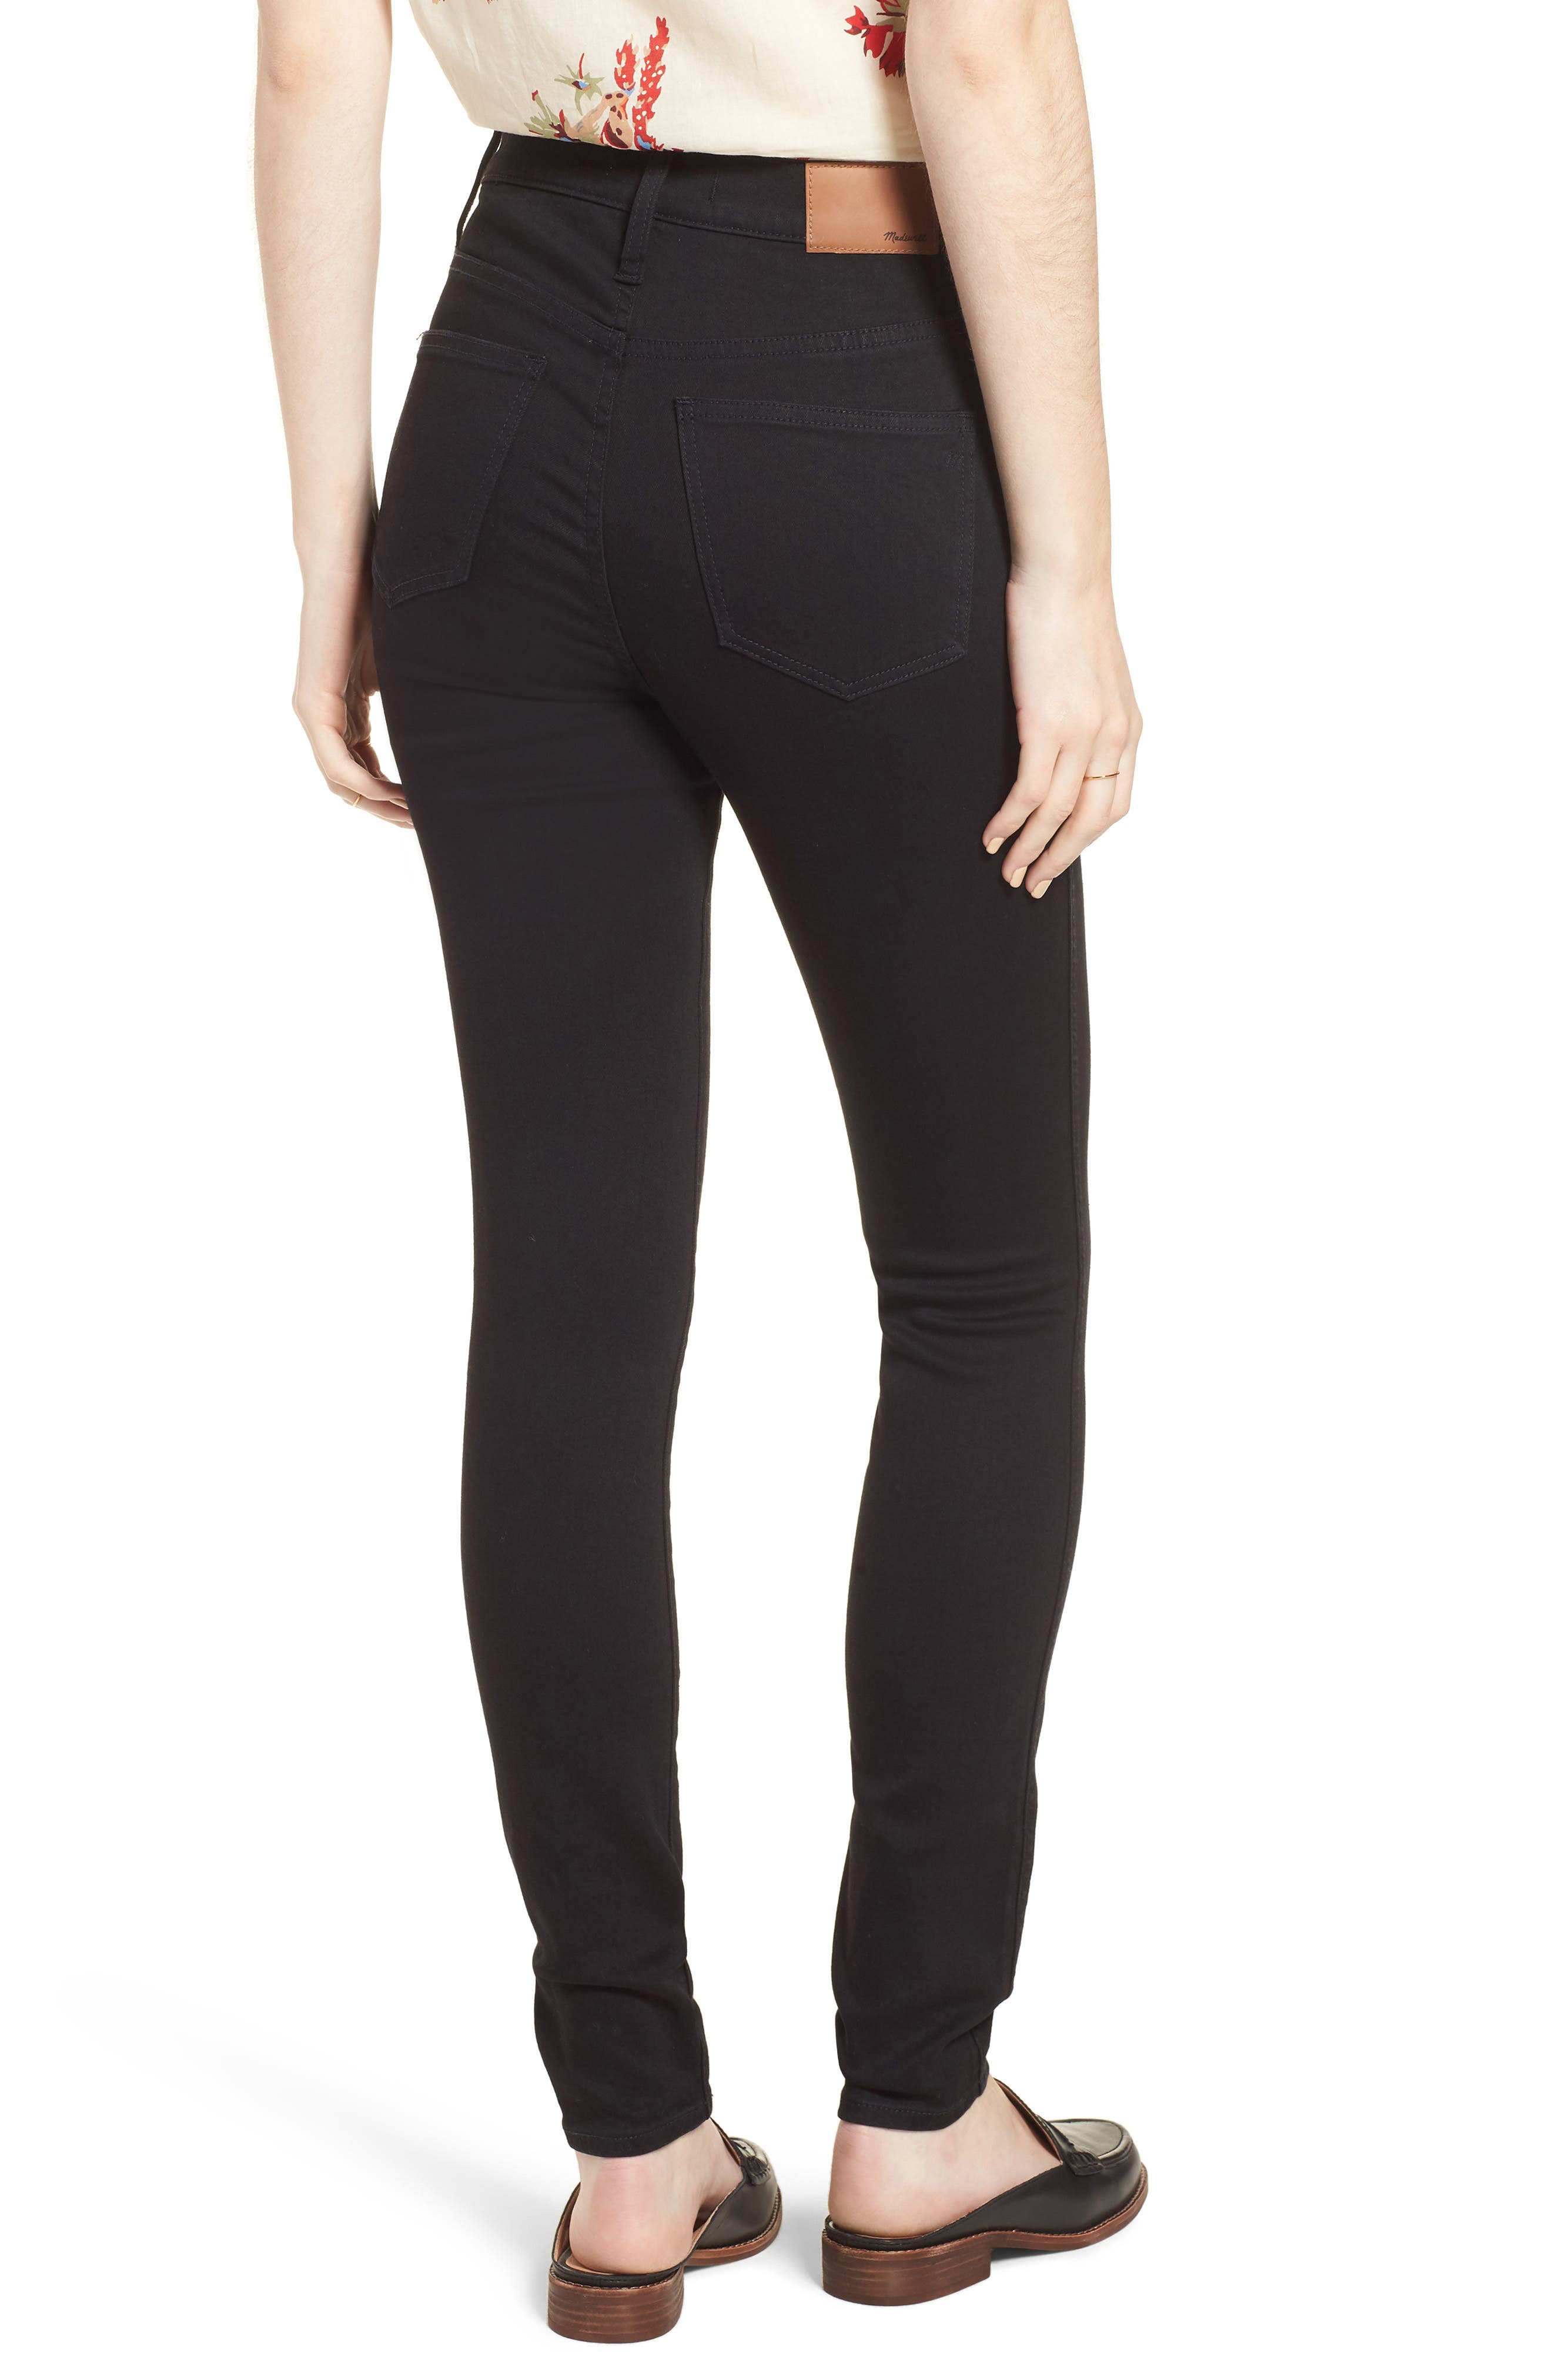 MADEWELL, 10-Inch High Waist Skinny Jeans, Alternate thumbnail 2, color, 001